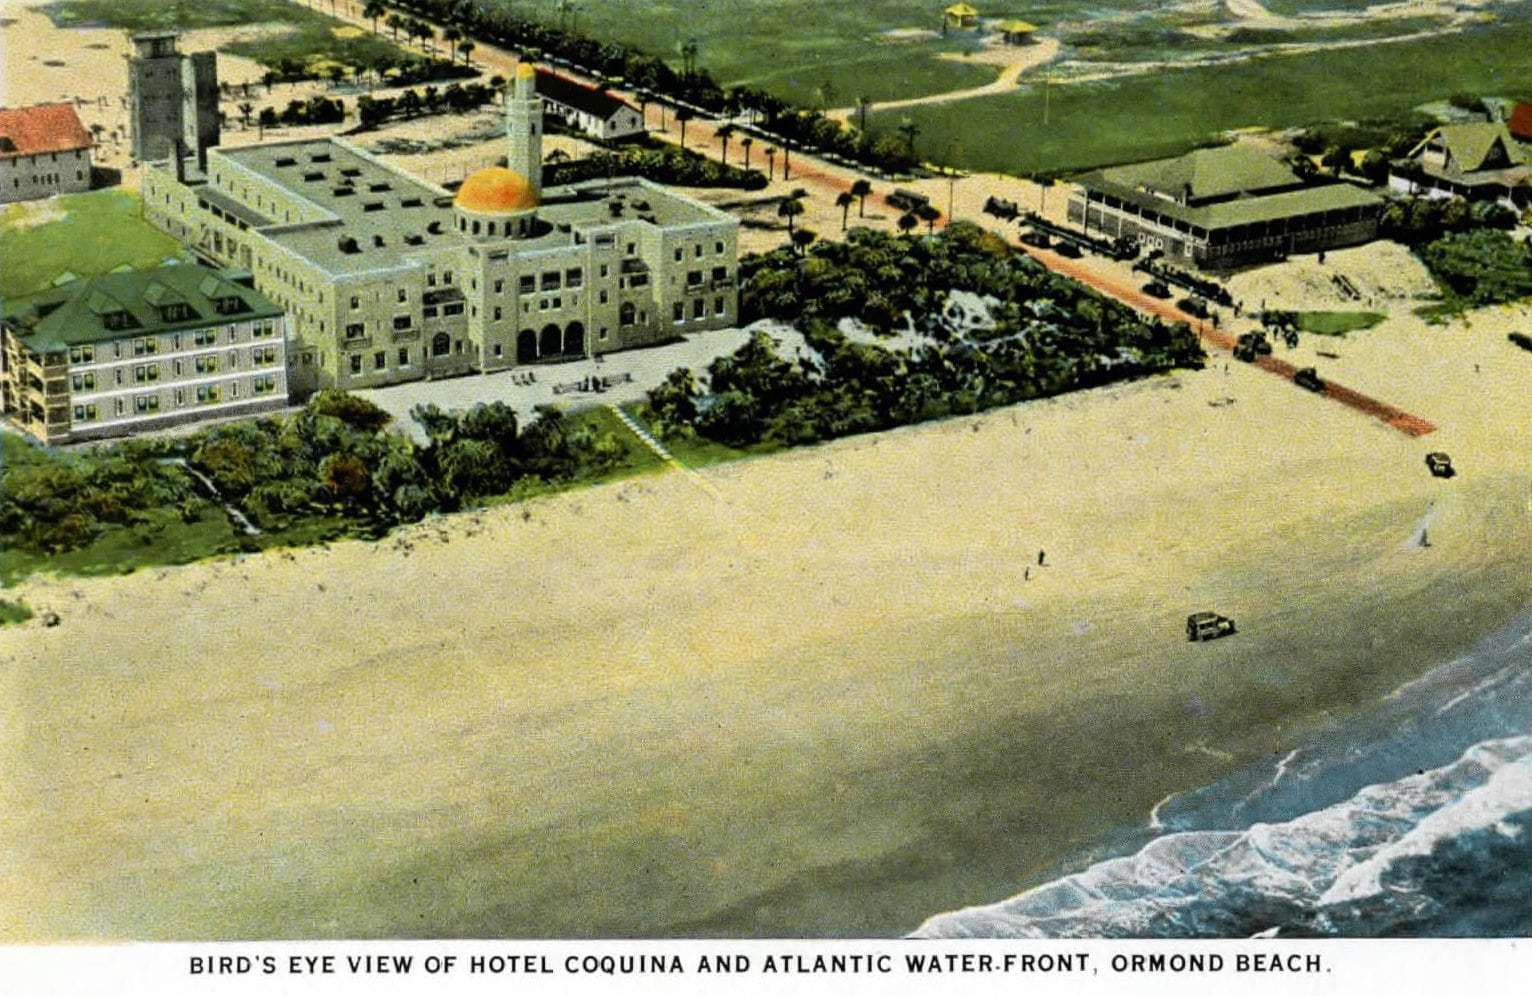 Old Florida Hotel Coquina and Ormond Beach